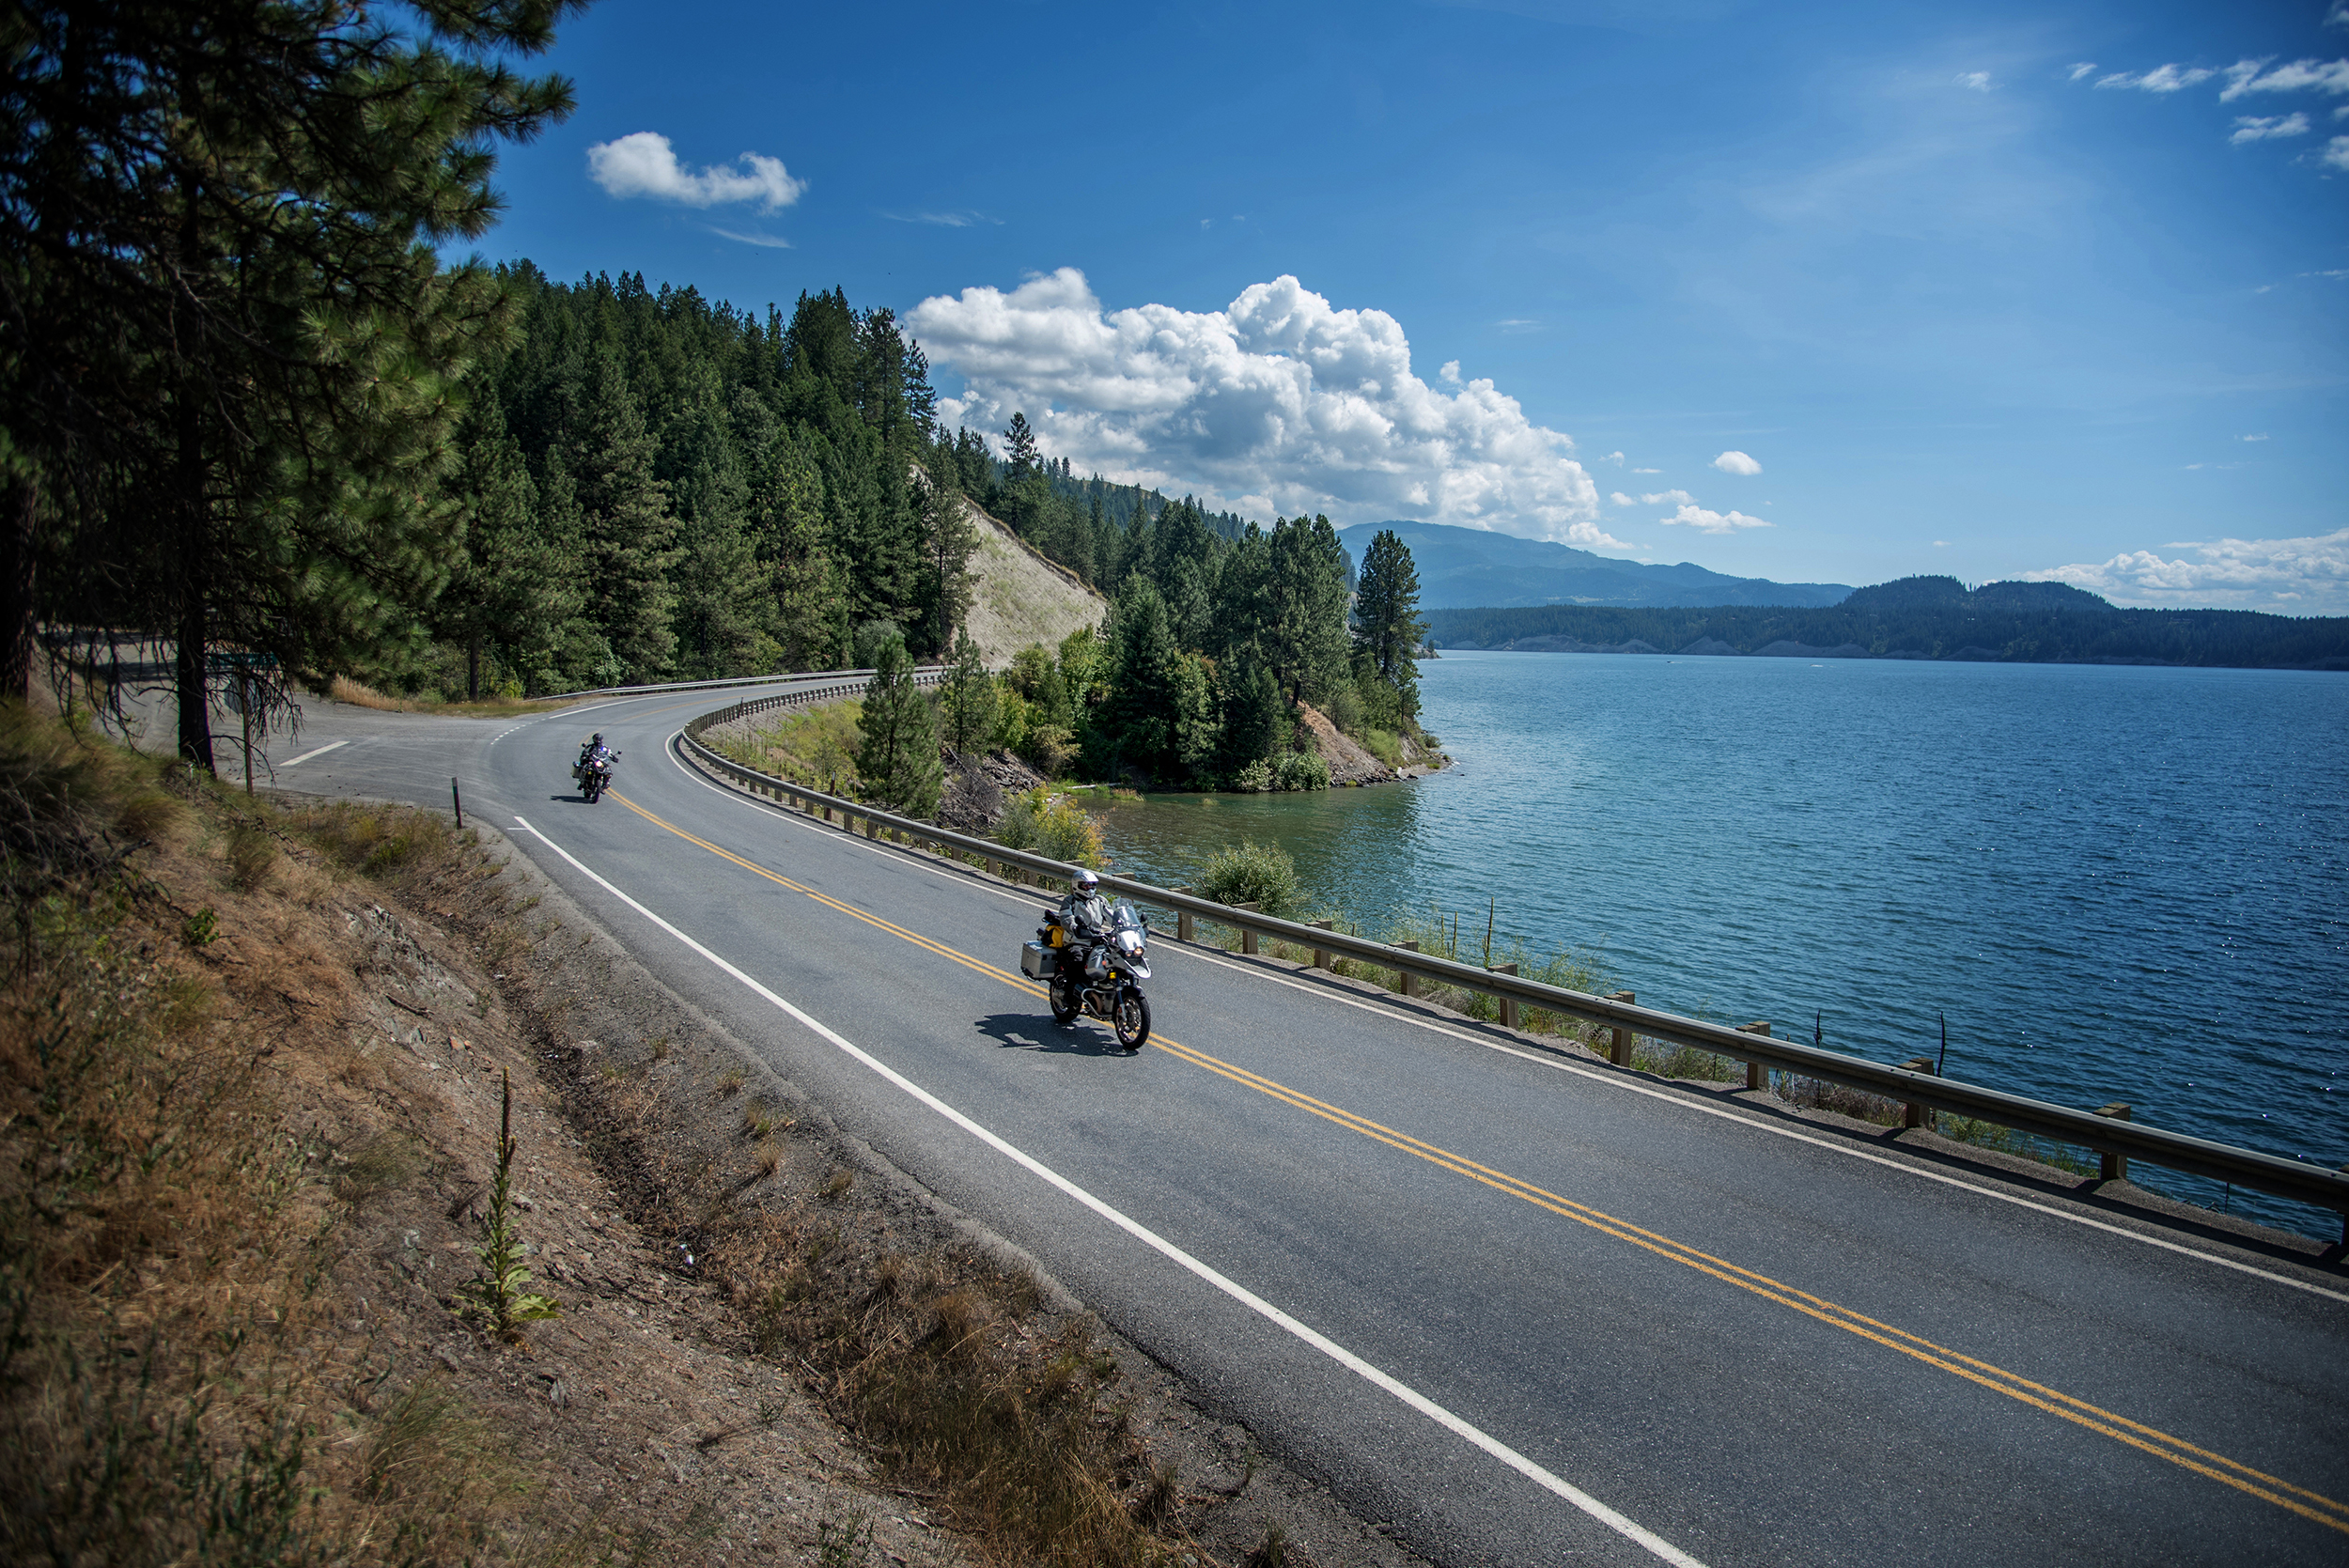 Once on the east side of the Columbia River, windy and twisty roads follow the river's edge towards the US/Canadian border